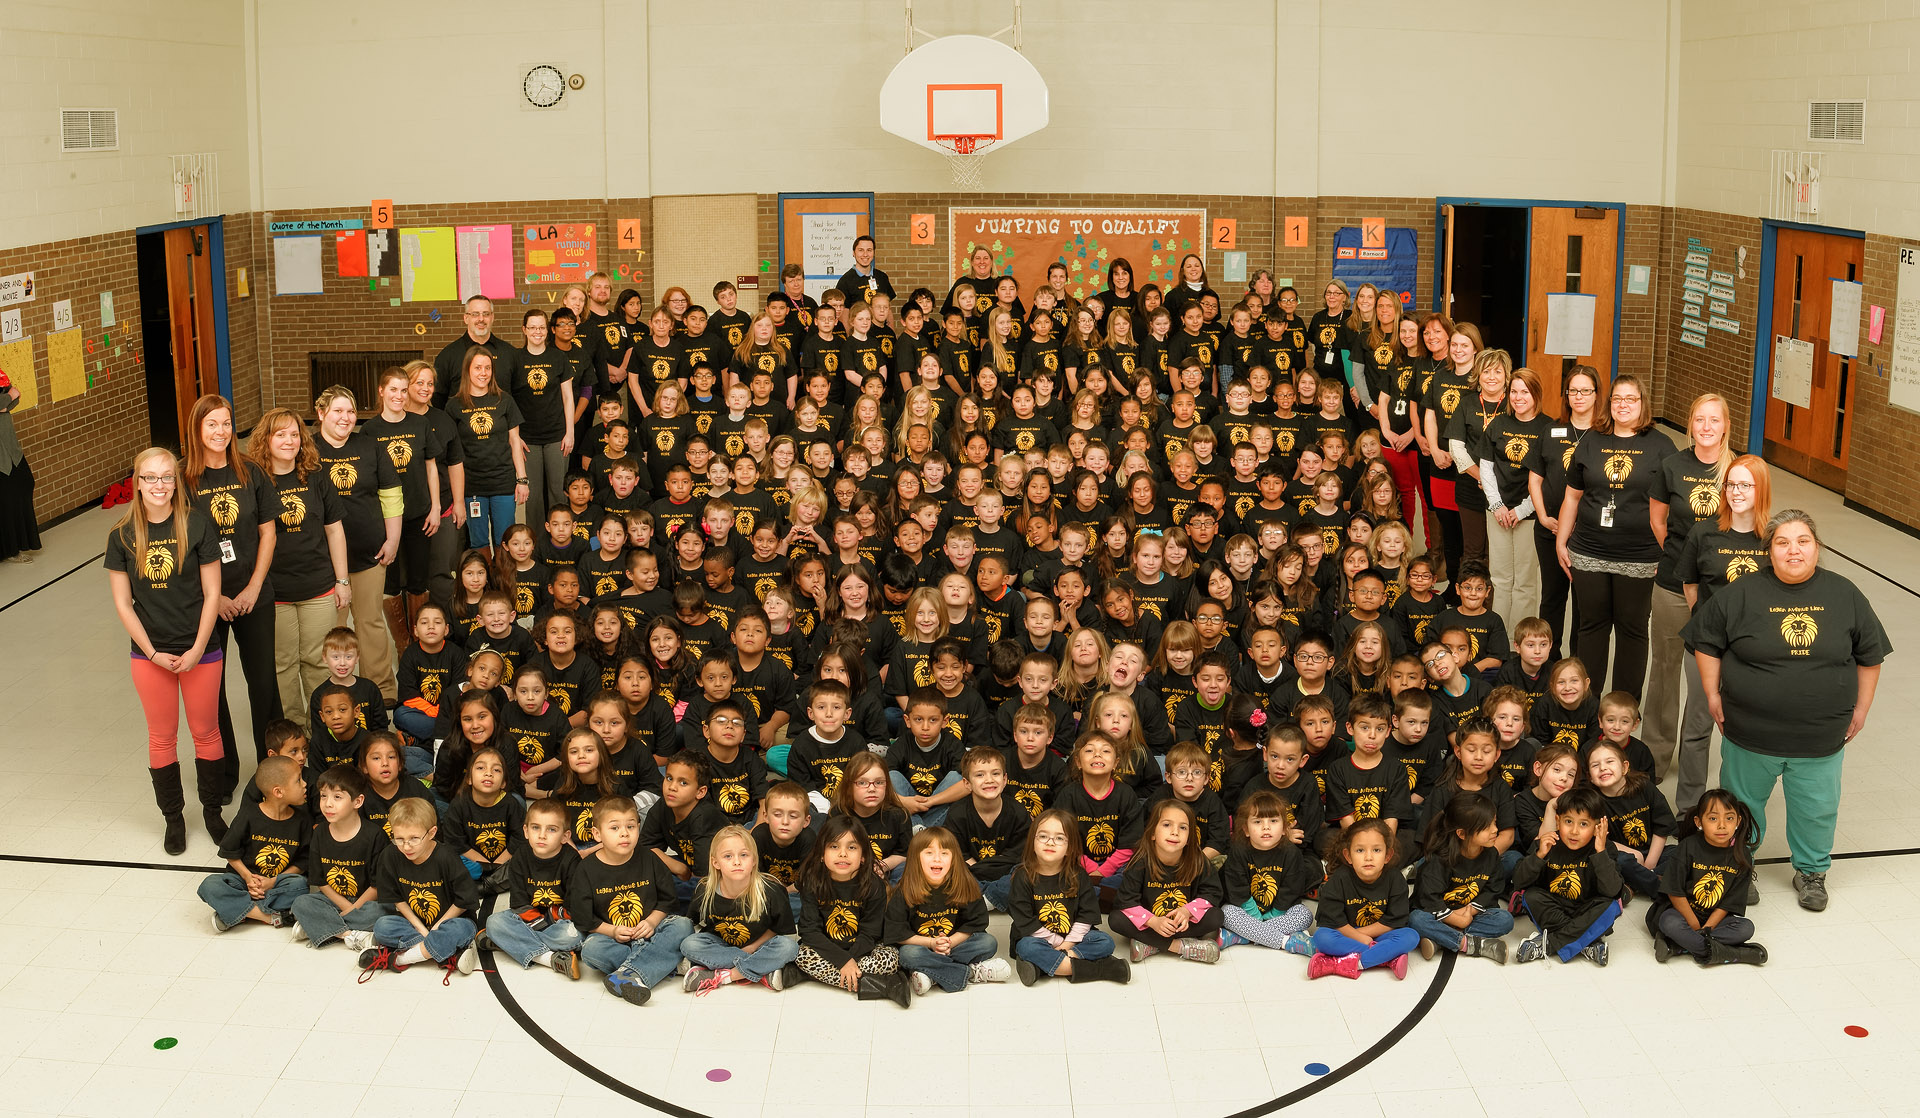 Group photos of Logan Avenue students